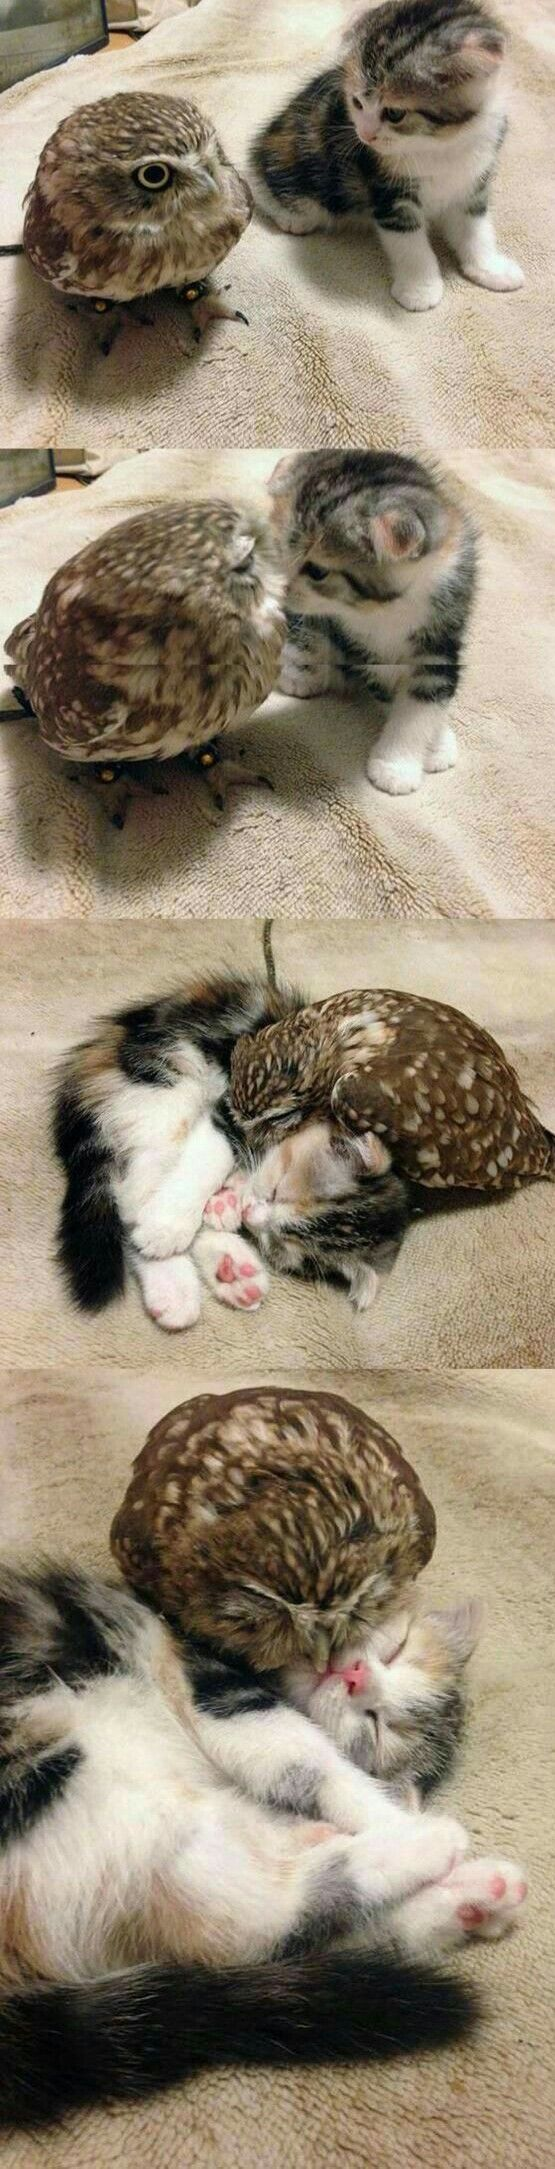 Kitten and owl - Album on Imgur